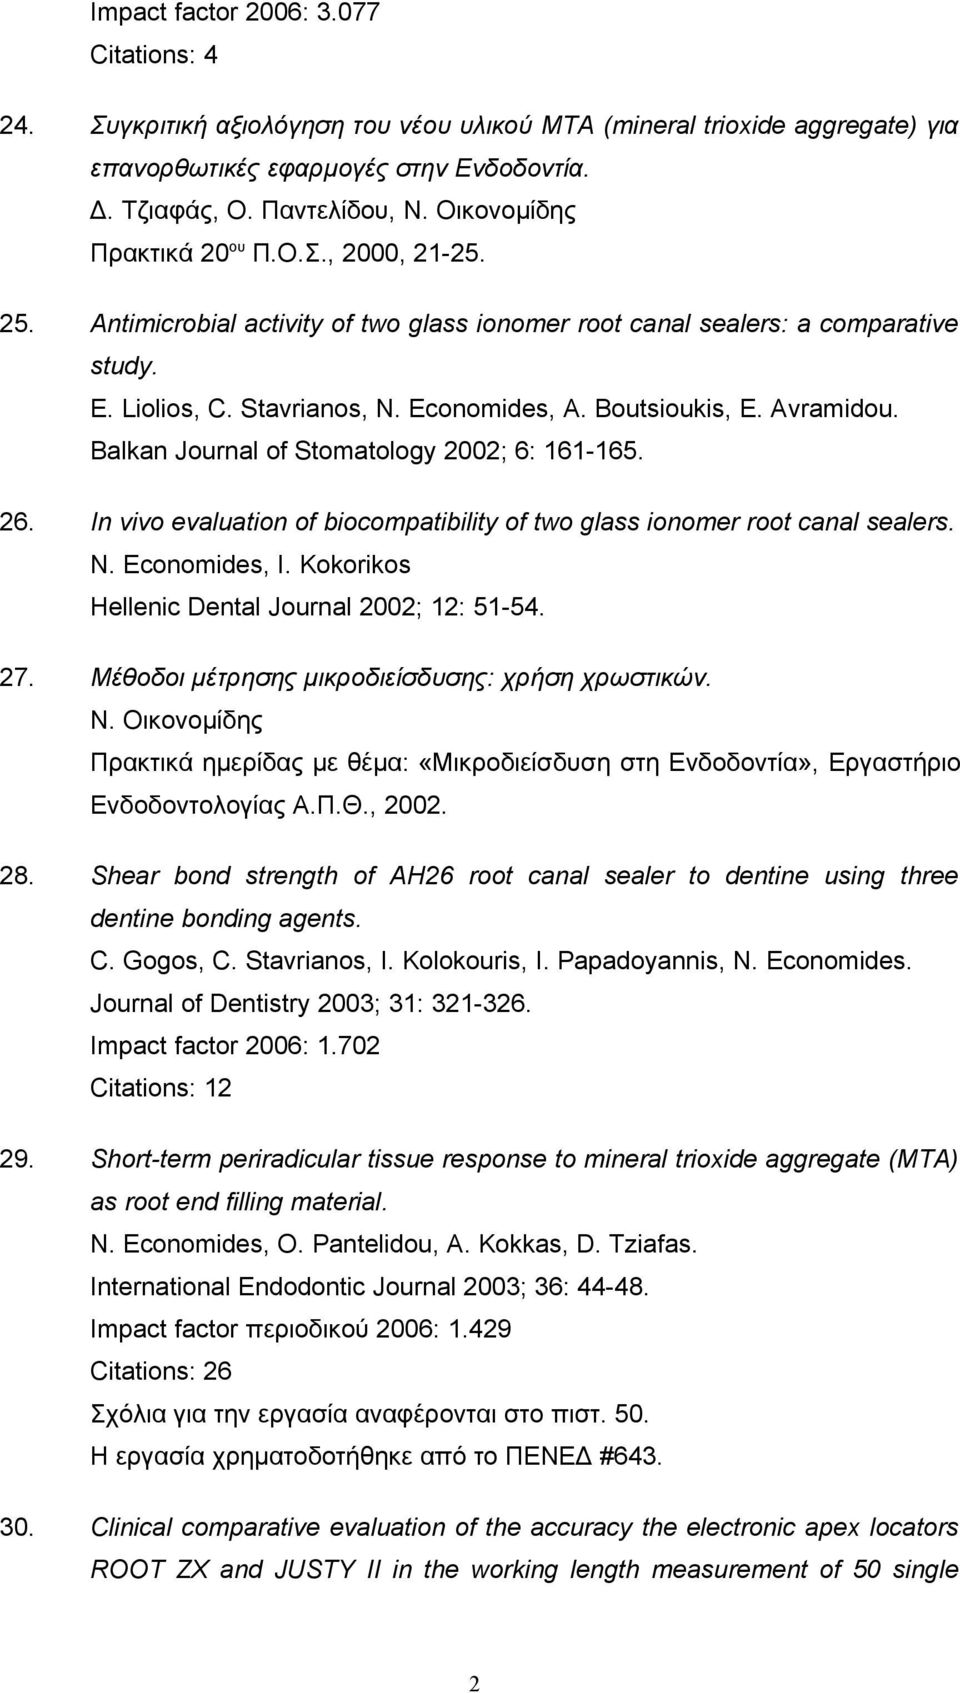 Avramidou. Balkan Journal of Stomatology 2002; 6: 161-165. 26. In vivo evaluation of biocompatibility of two glass ionomer root canal sealers. N. Economides, I.